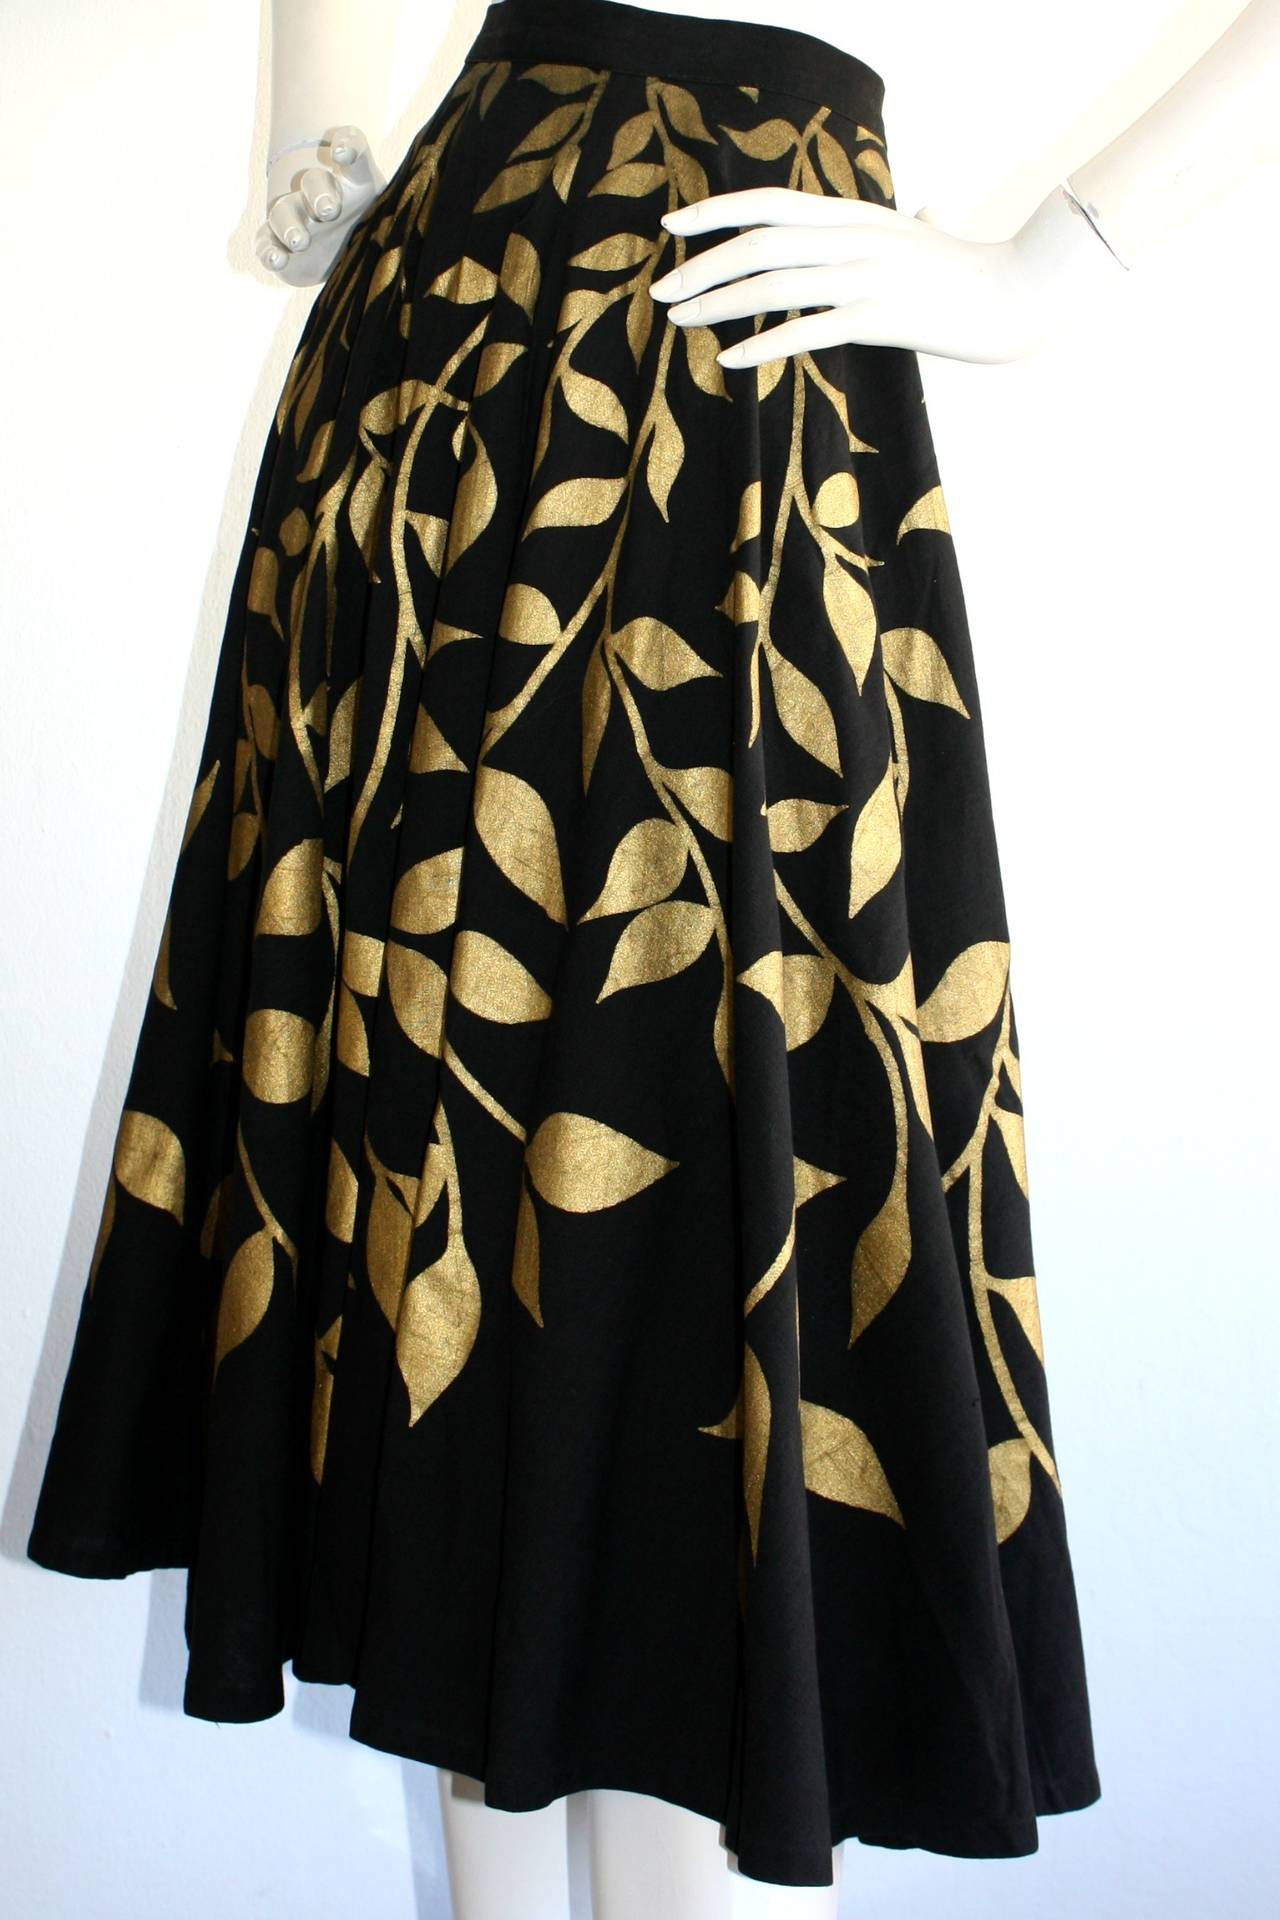 1950s Londy of Mexico Black & Gold Hand Painted Foliage Mexico Circle Skirt 6